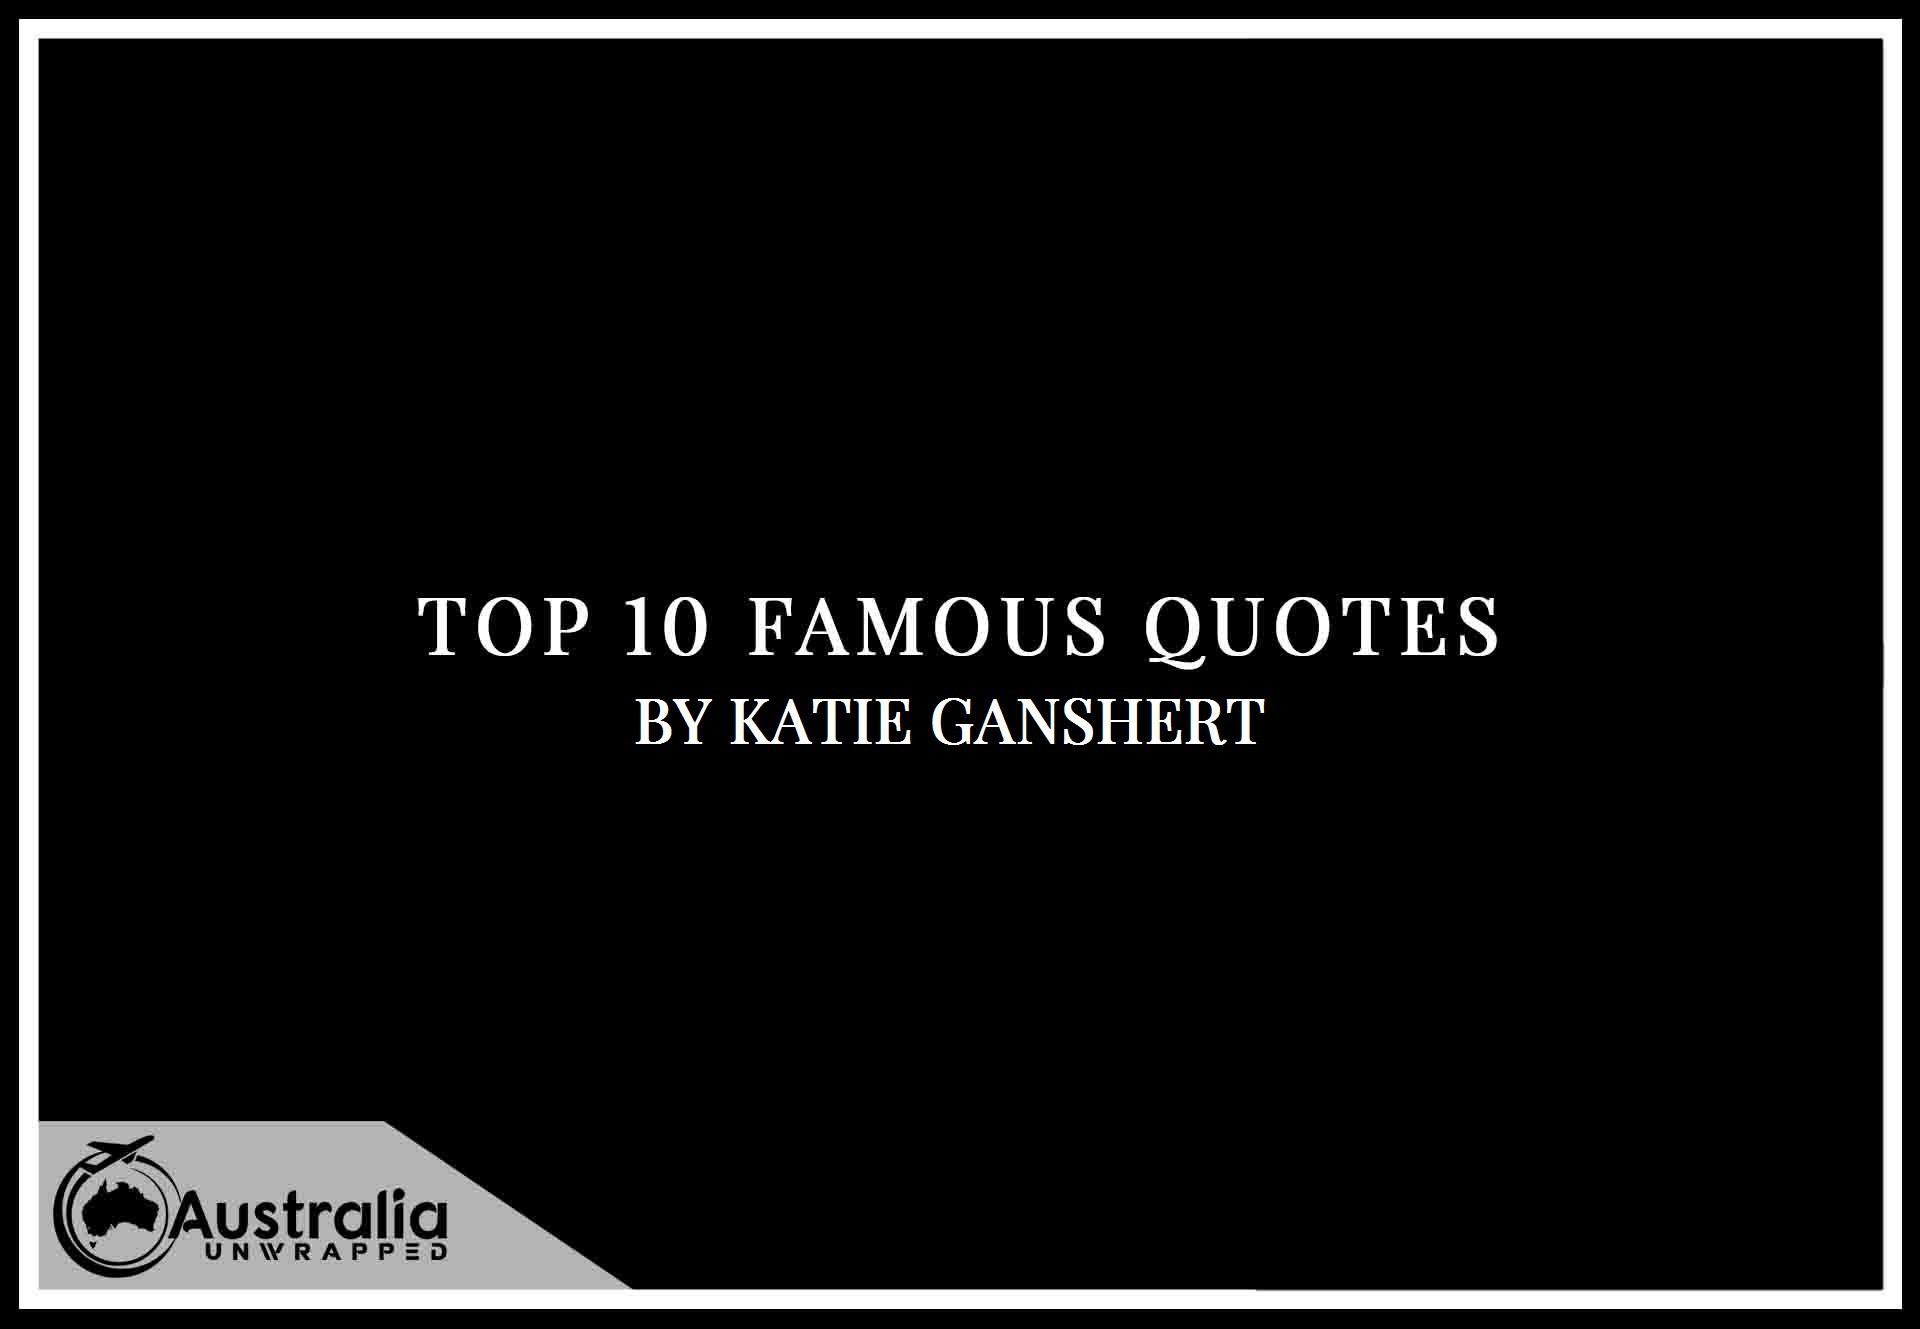 Katie Ganshert's Top 10 Popular and Famous Quotes